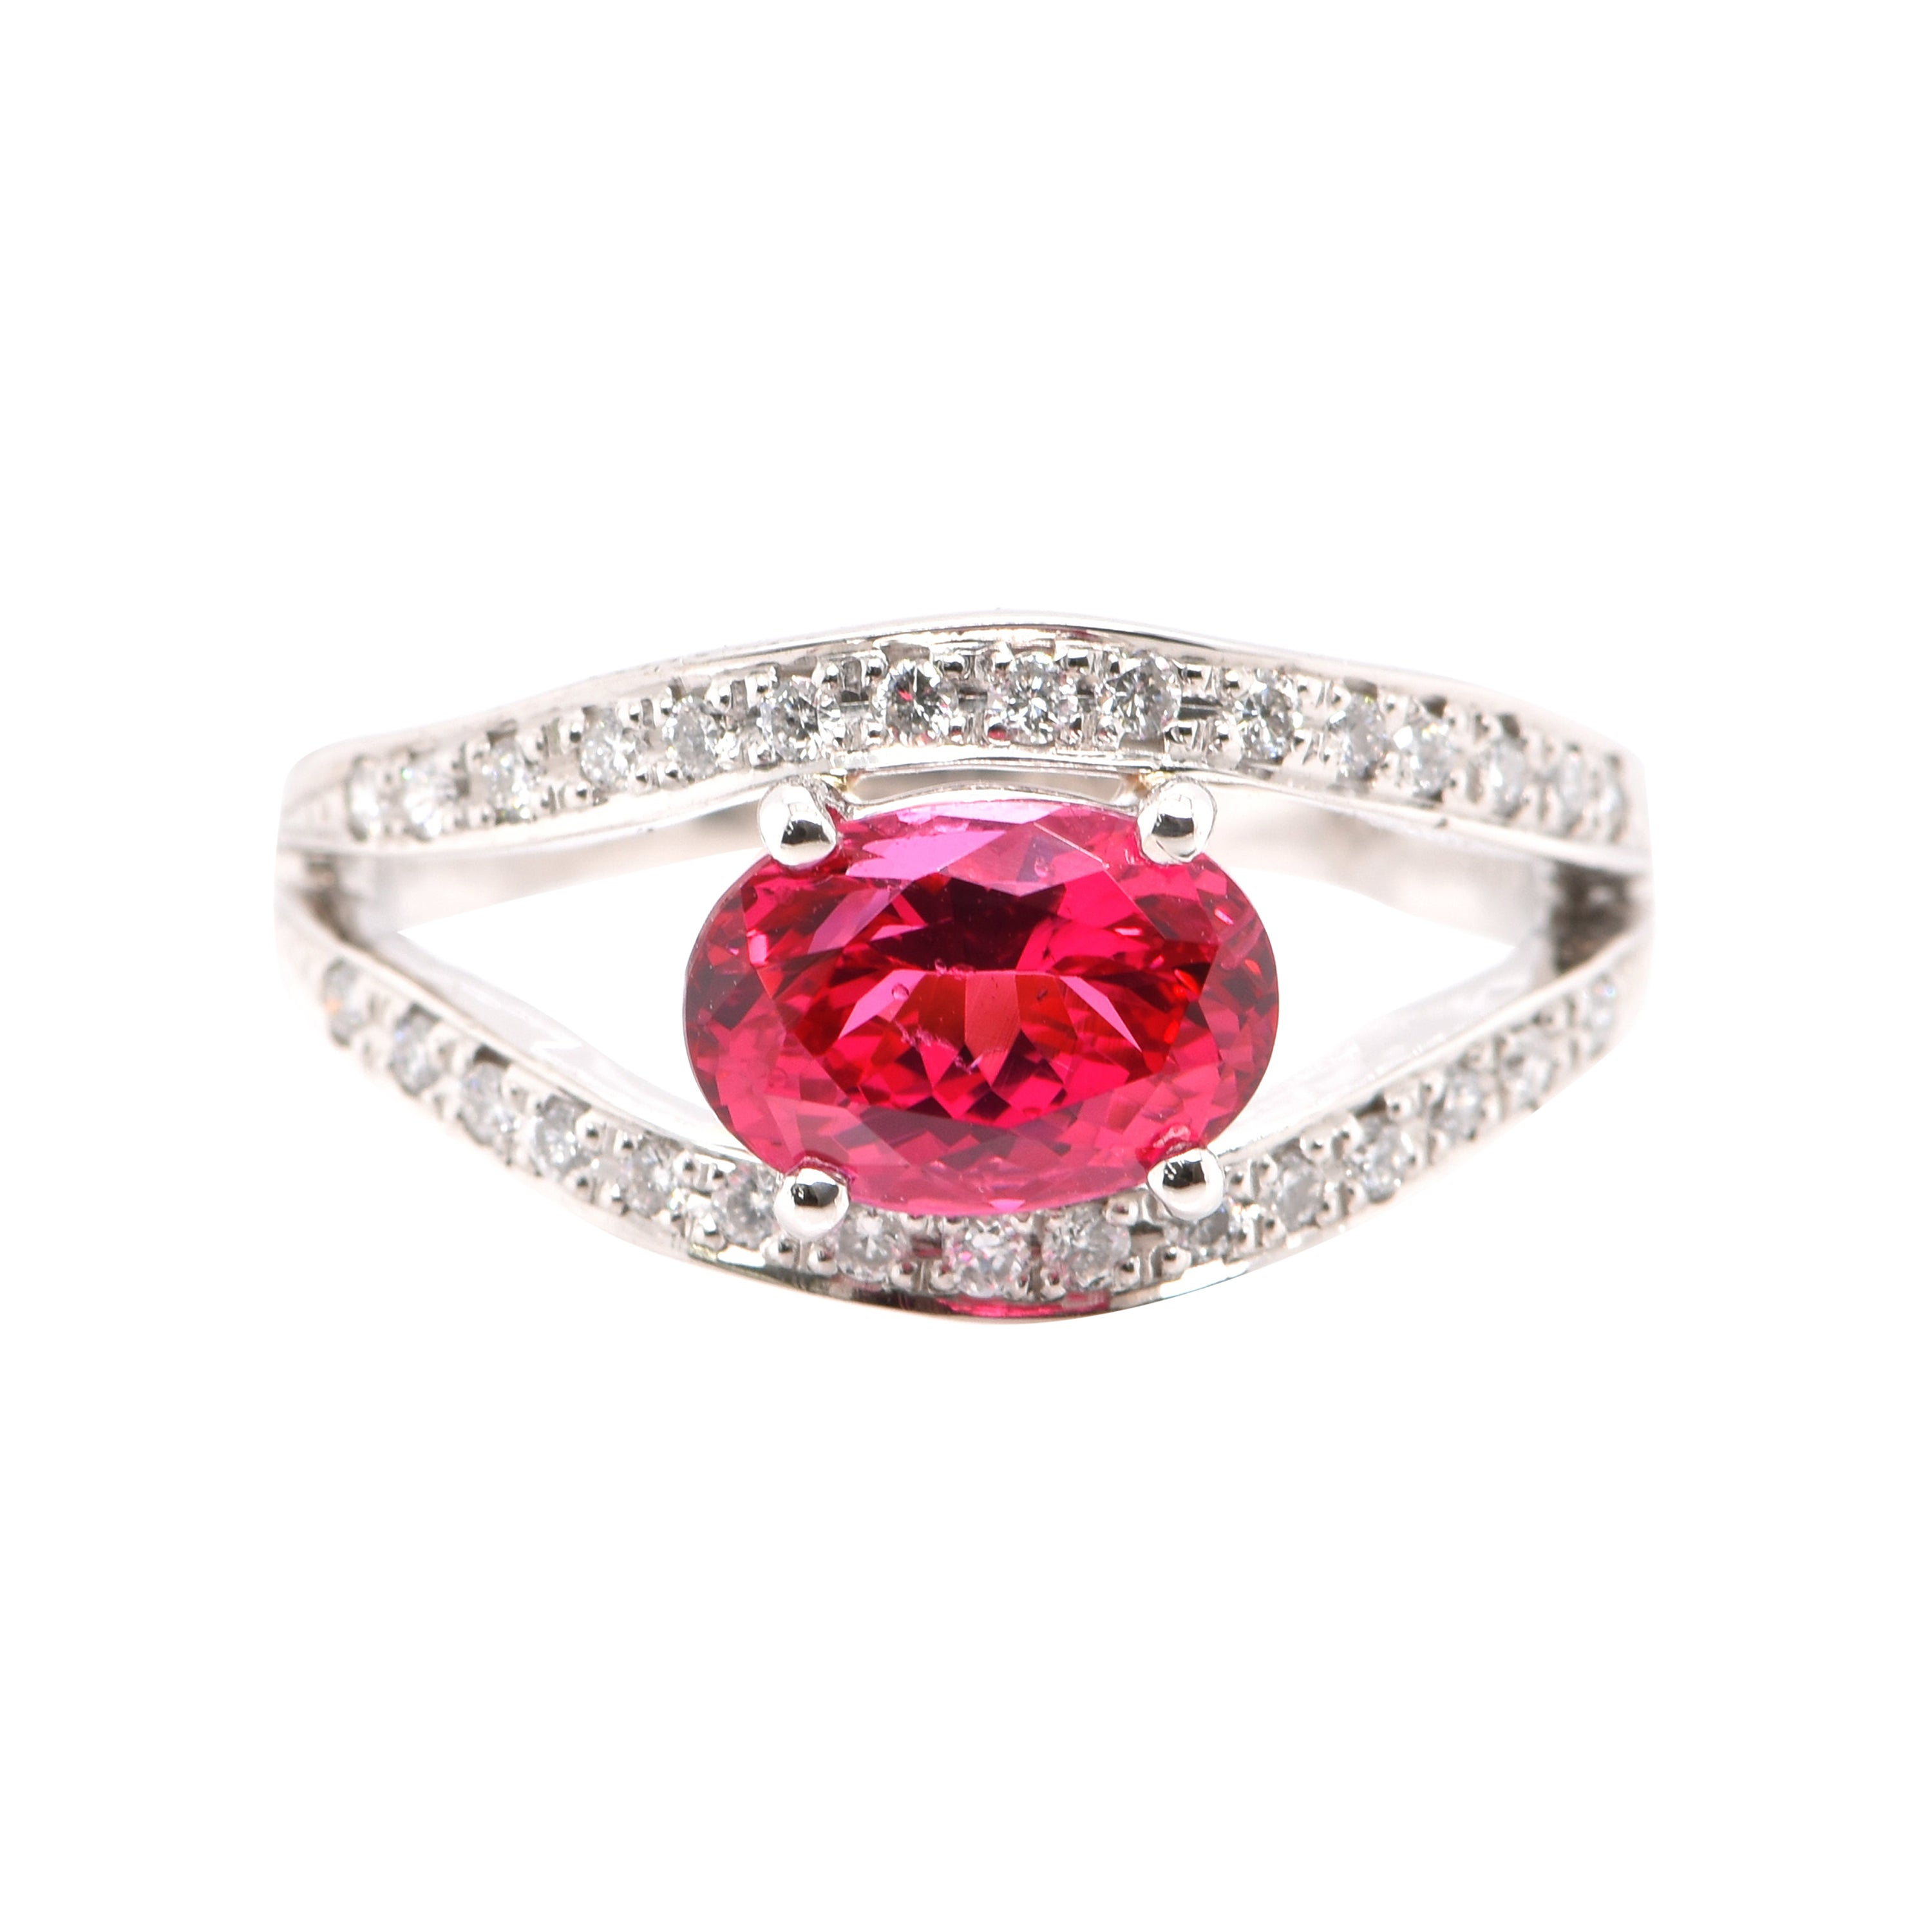 1.96 Carat Natural Red Spinel and Diamond Ring Set in Platinum